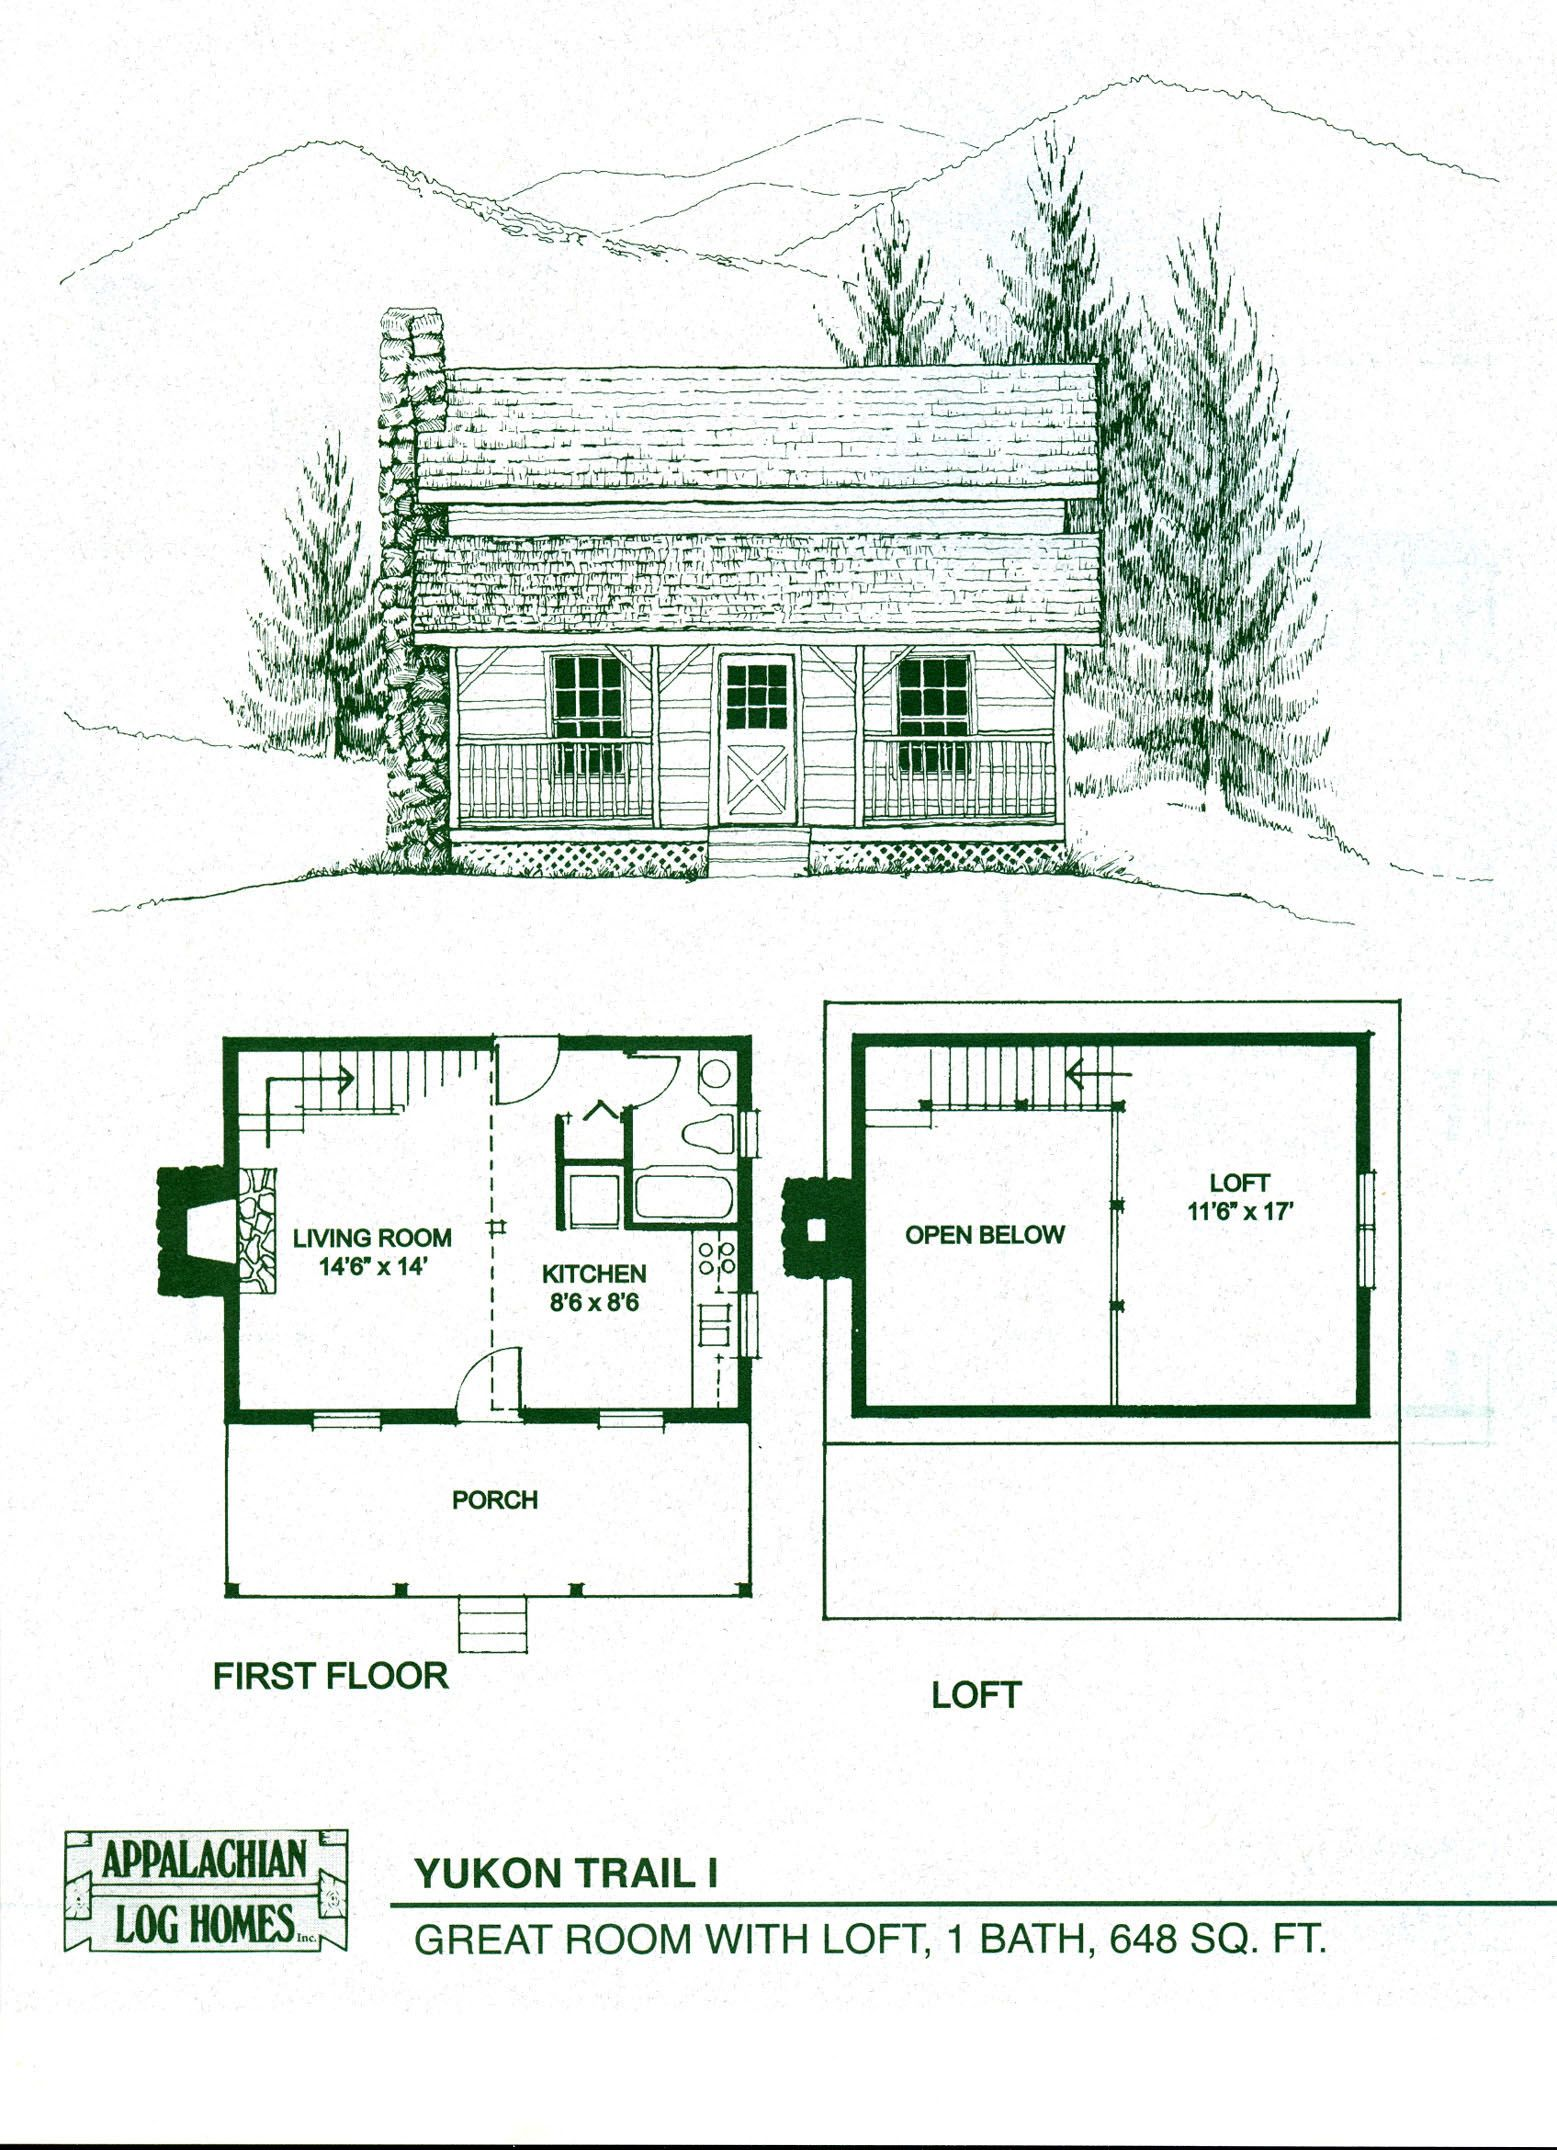 Cool Log Home Floor Plans Log Cabin Kits Appalachian Log Homes Largest Home Design Picture Inspirations Pitcheantrous